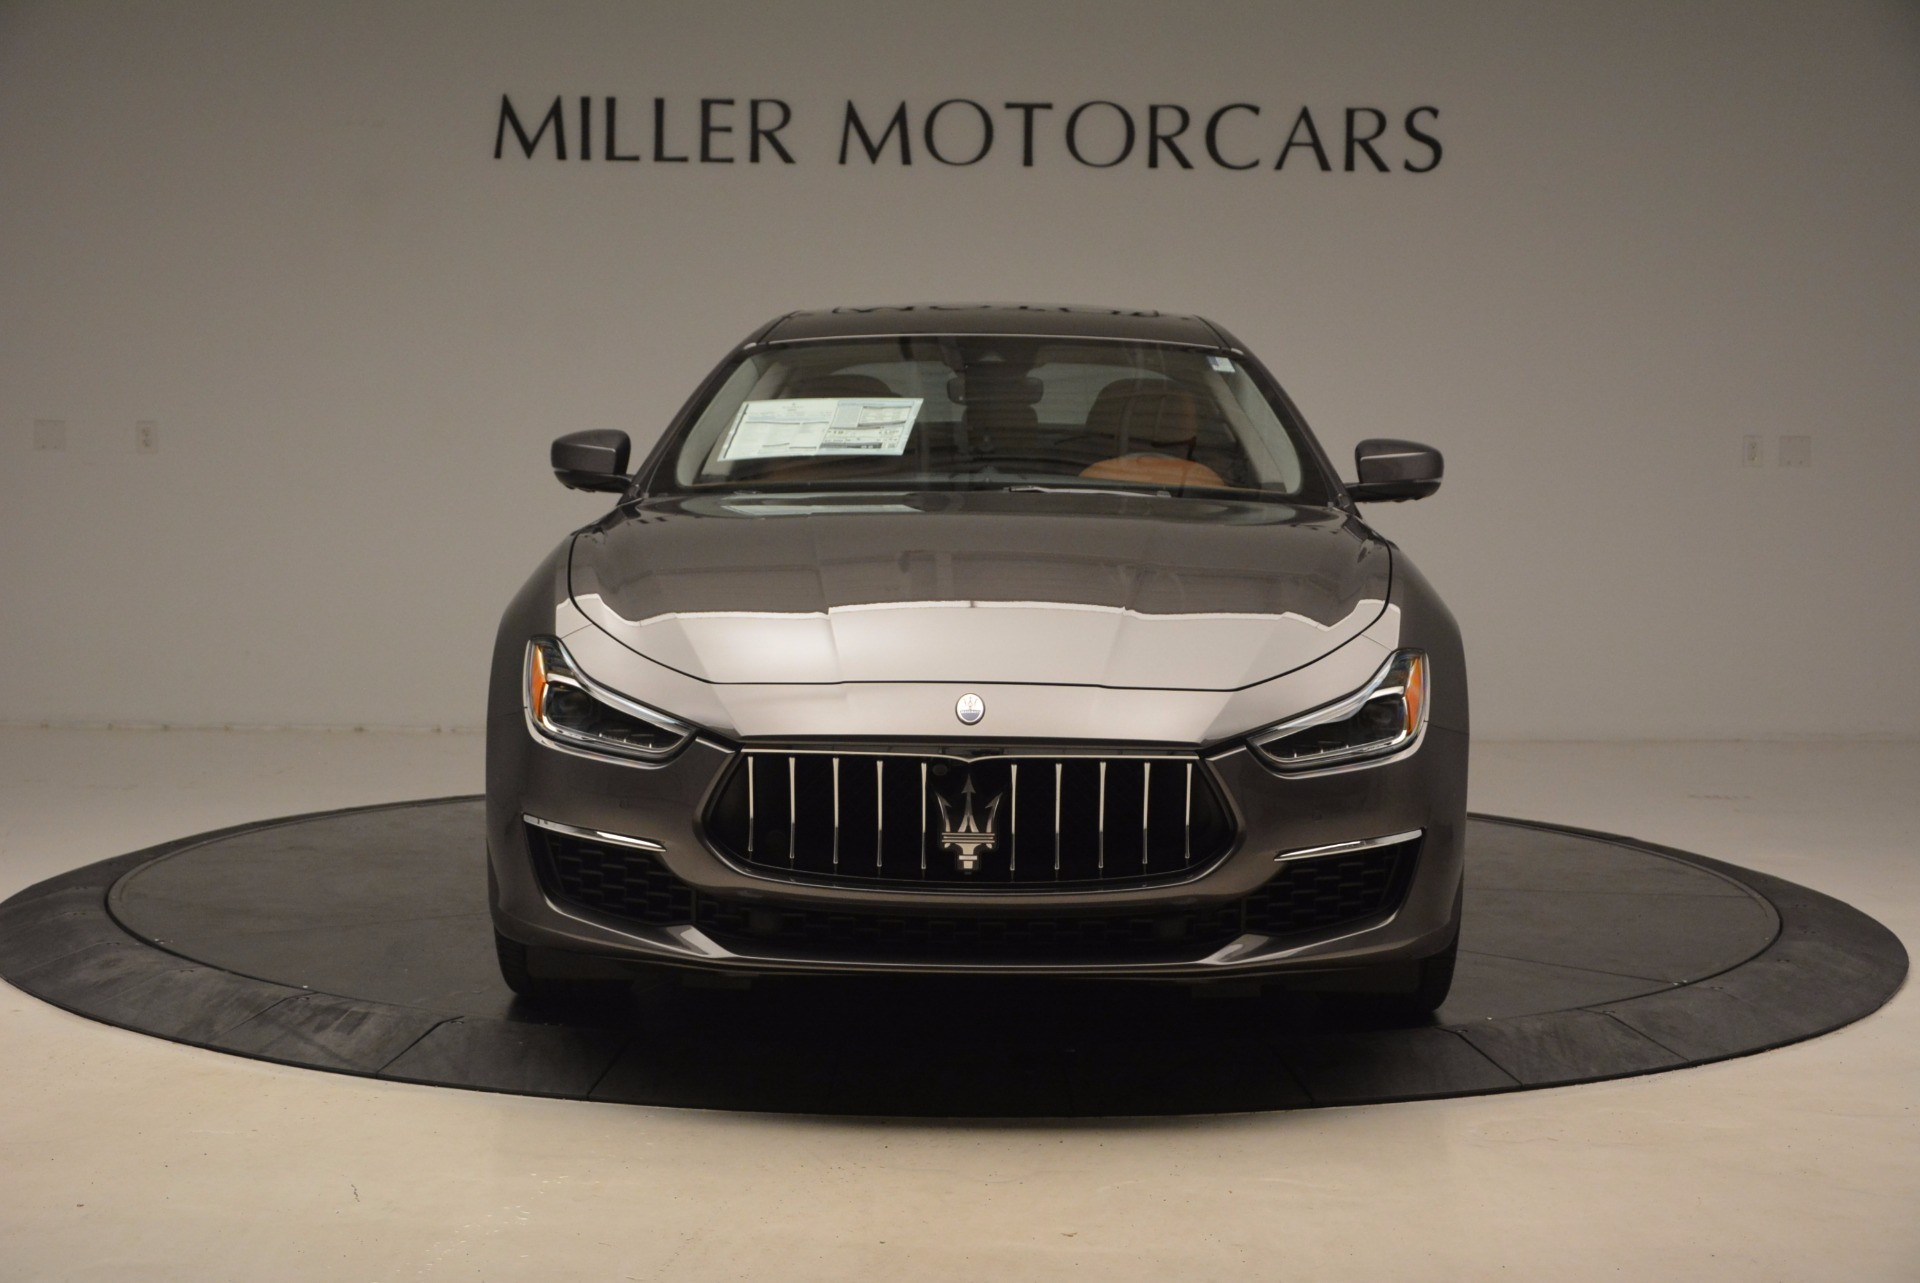 New 2018 Maserati Ghibli S Q4 GranLusso For Sale In Greenwich, CT. Alfa Romeo of Greenwich, M2005 1896_p12